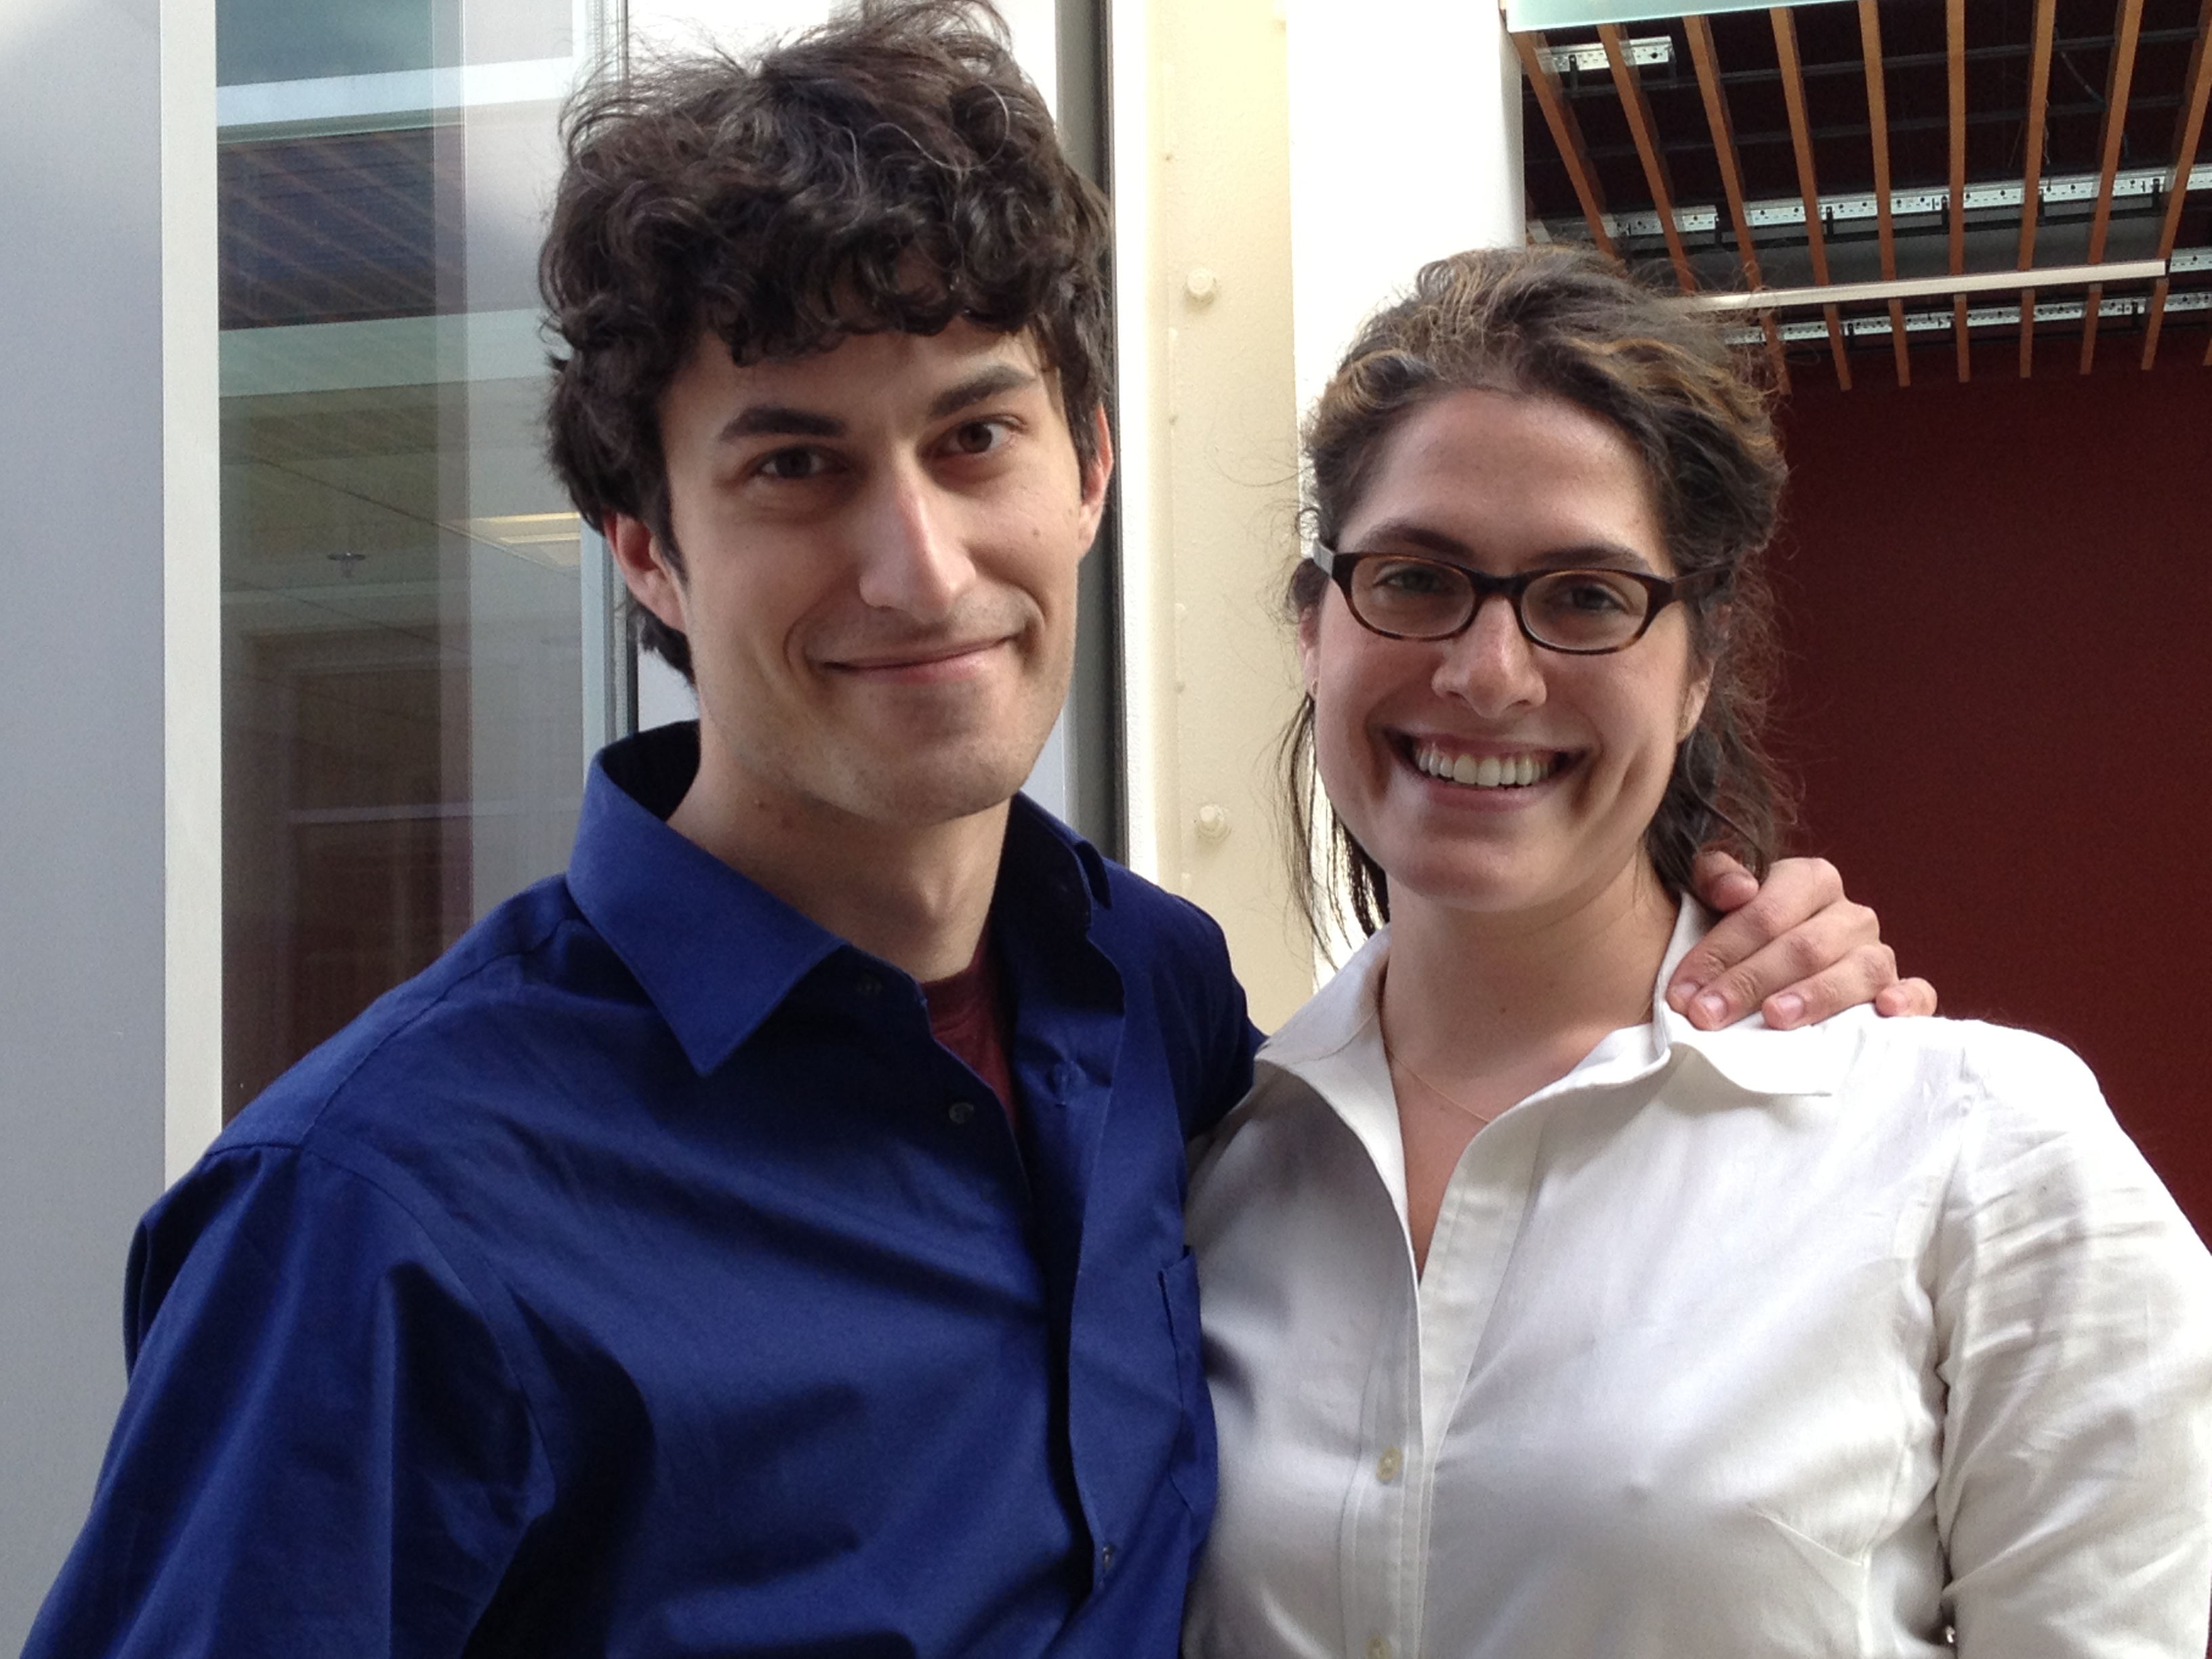 Caption: Sarah and Peter are about to begin their third year of med school., Credit: Kristin Gourlay